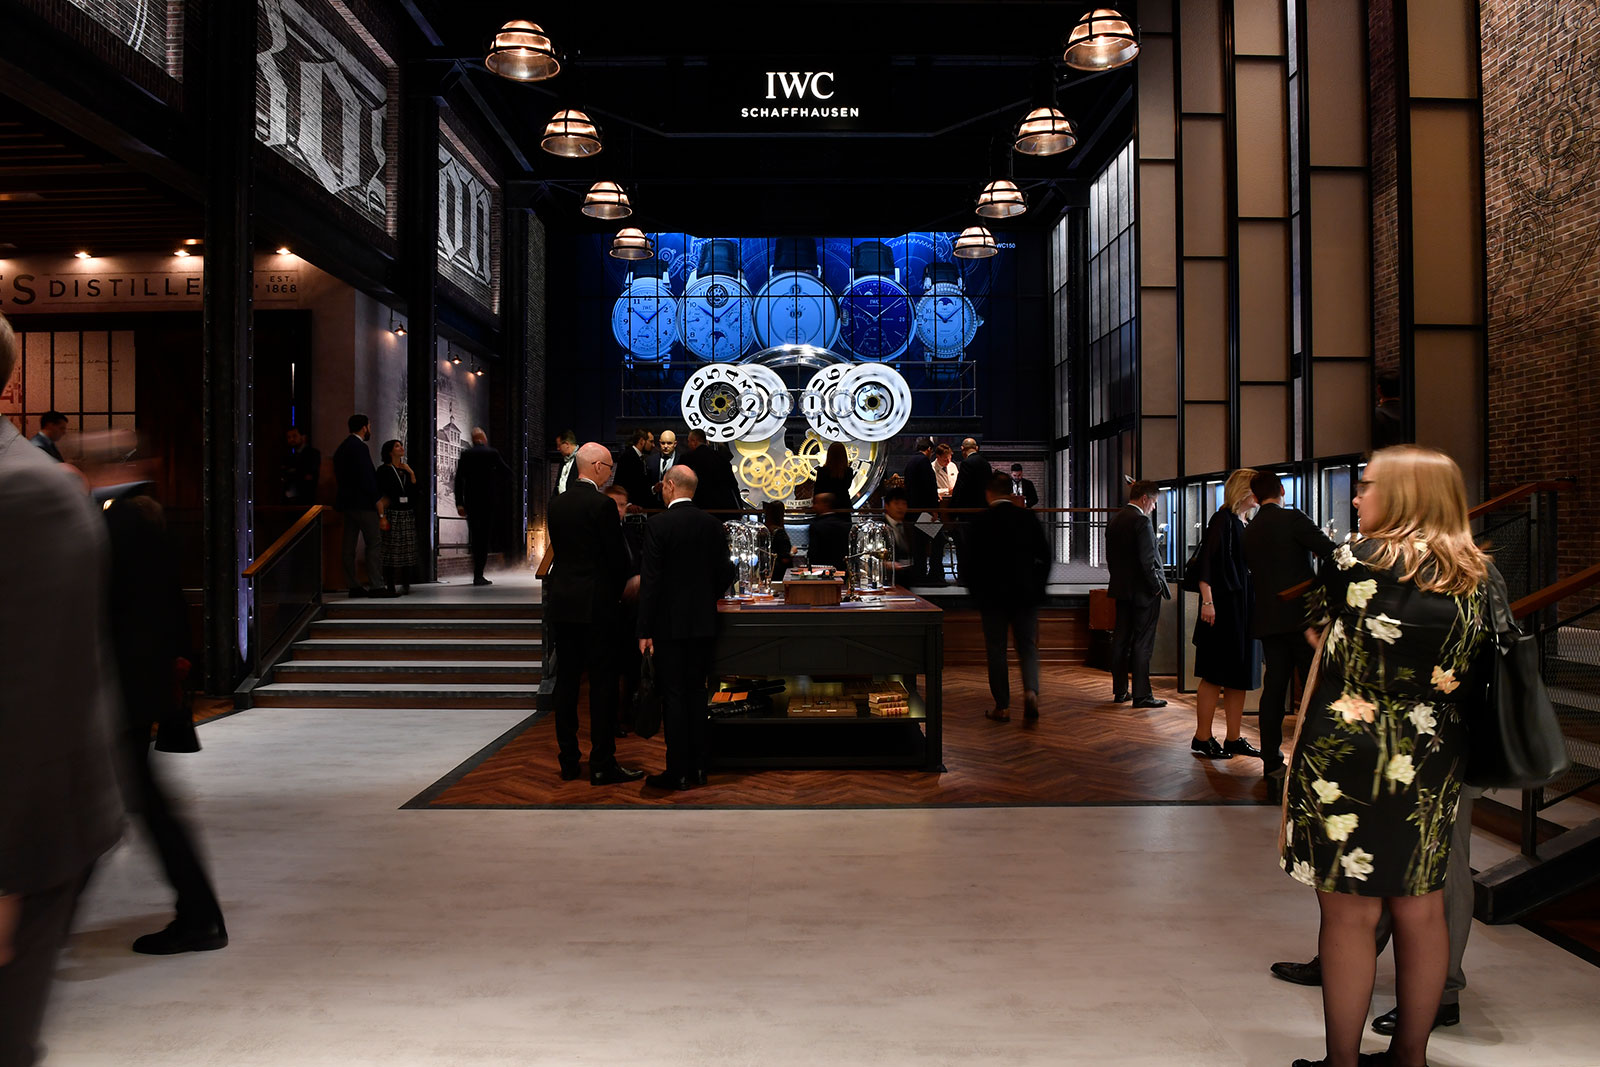 SIHH 2018 IWC booth